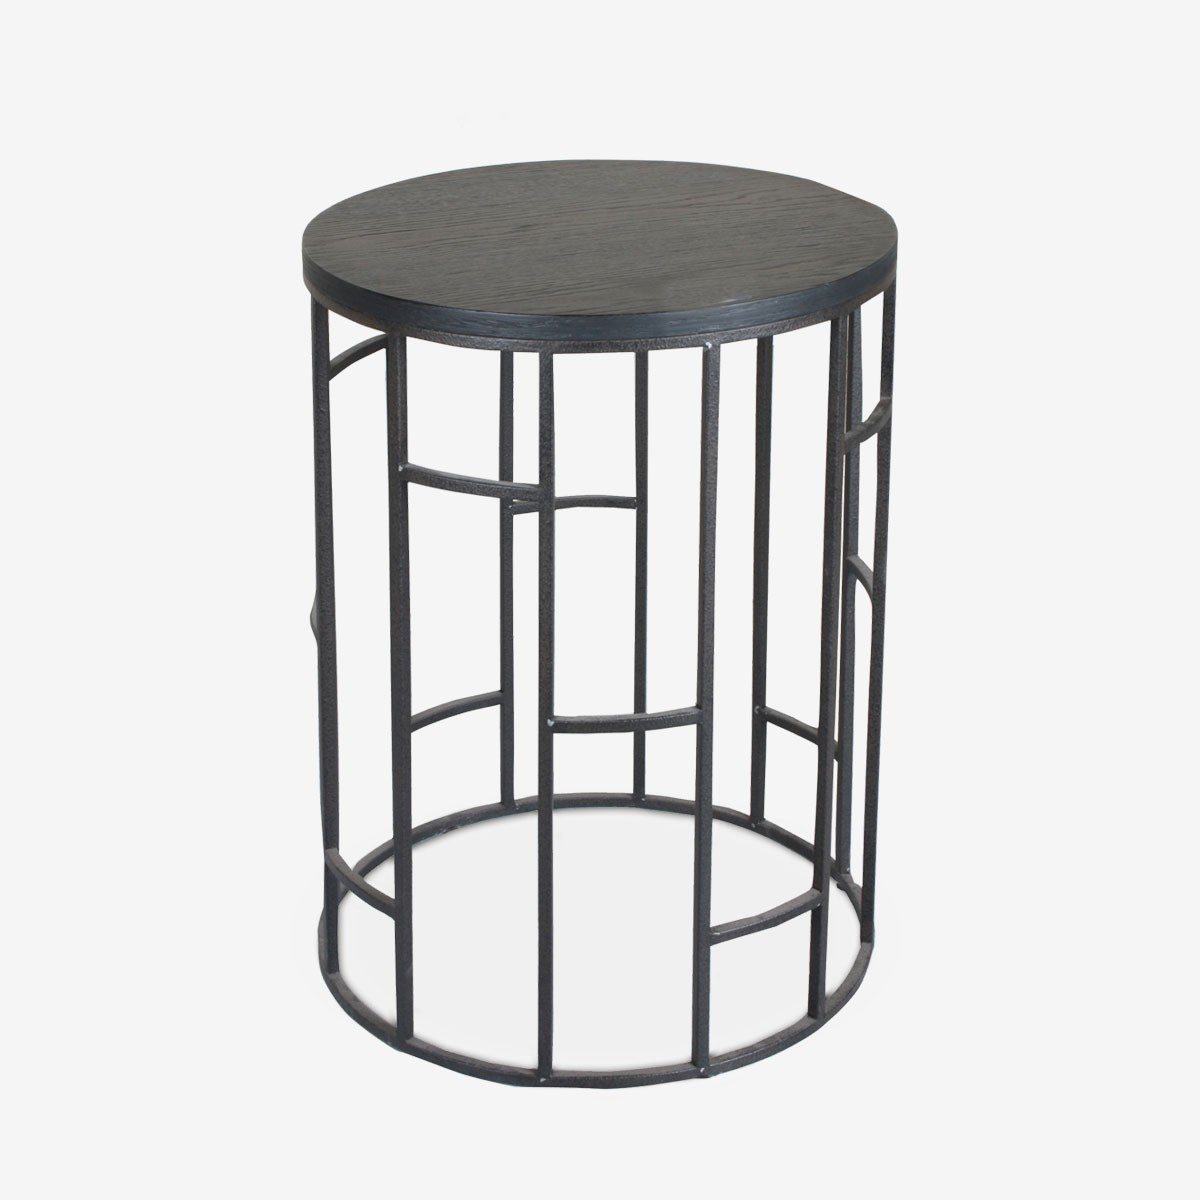 Circular End Tables Circular Grid Side Table Side Tables Tables